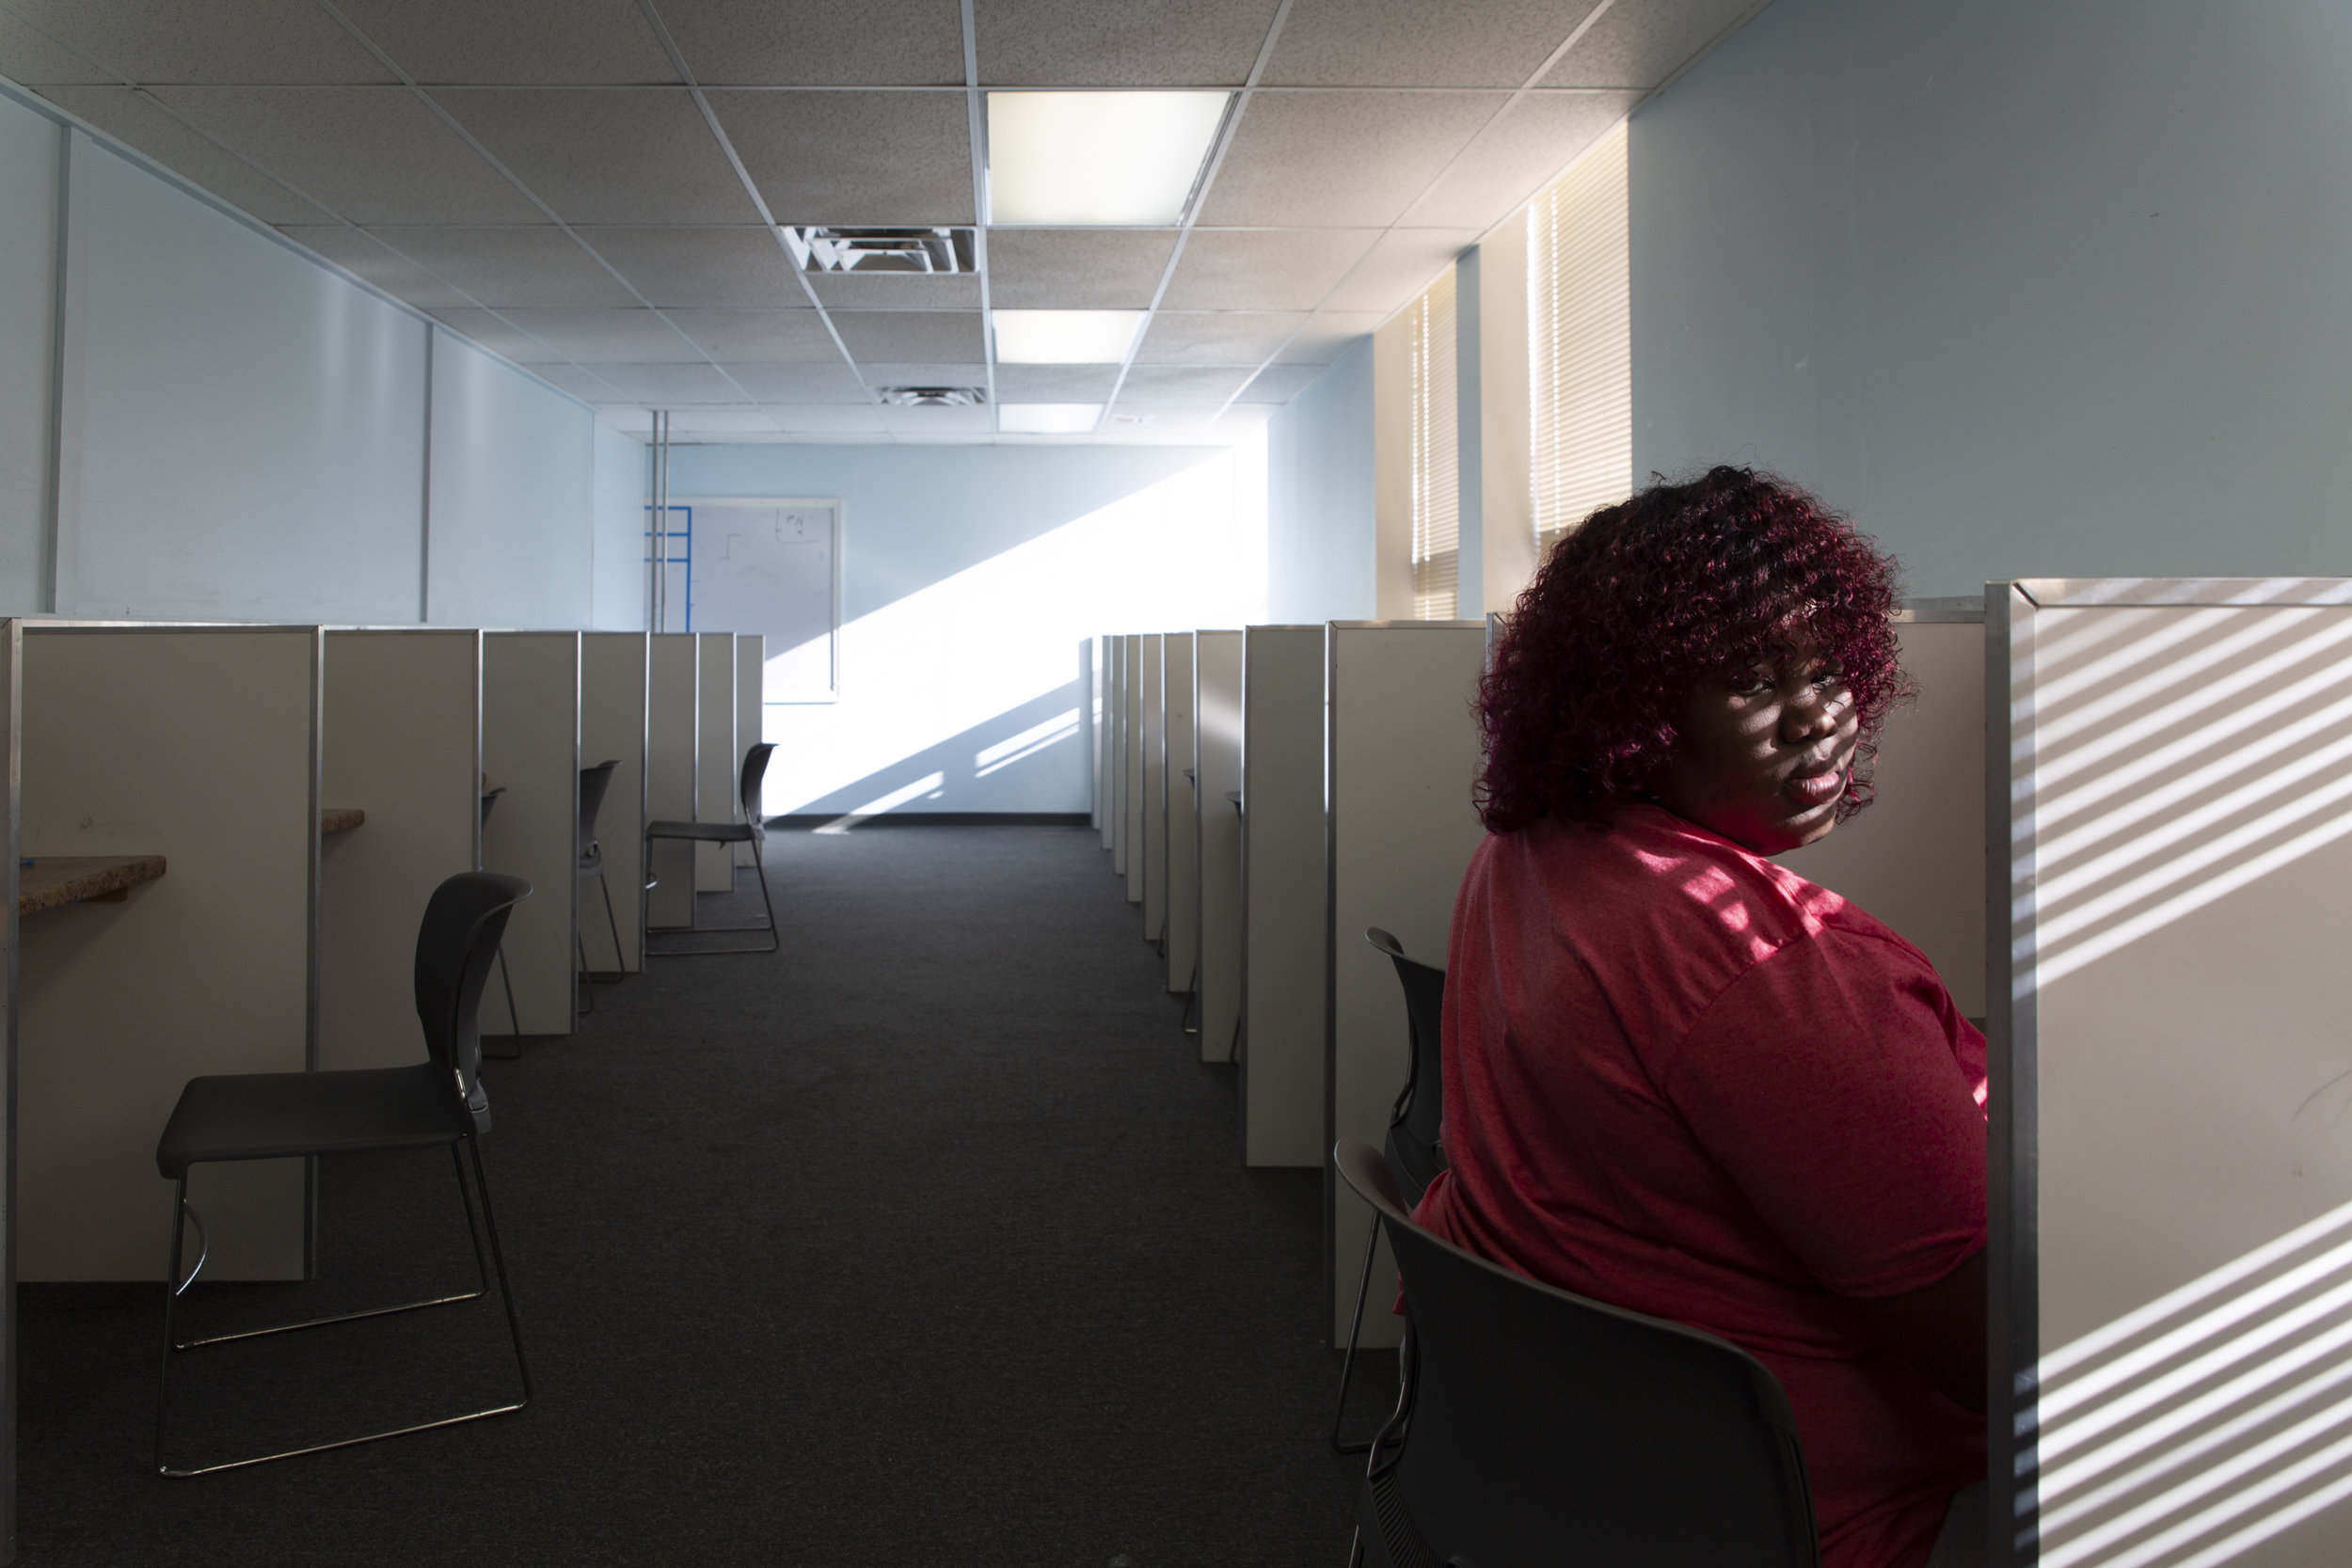 """""""I hate math,"""" Mikelah mumbles after completing a computerized test at Focus Learning Academy on Tuesday, Dec. 18, 2018. The school allows students to pace their own learning, which gives Mikelah the flexibility to raise Isaiah, but also lacks the structured classroom setting of a typical high school."""